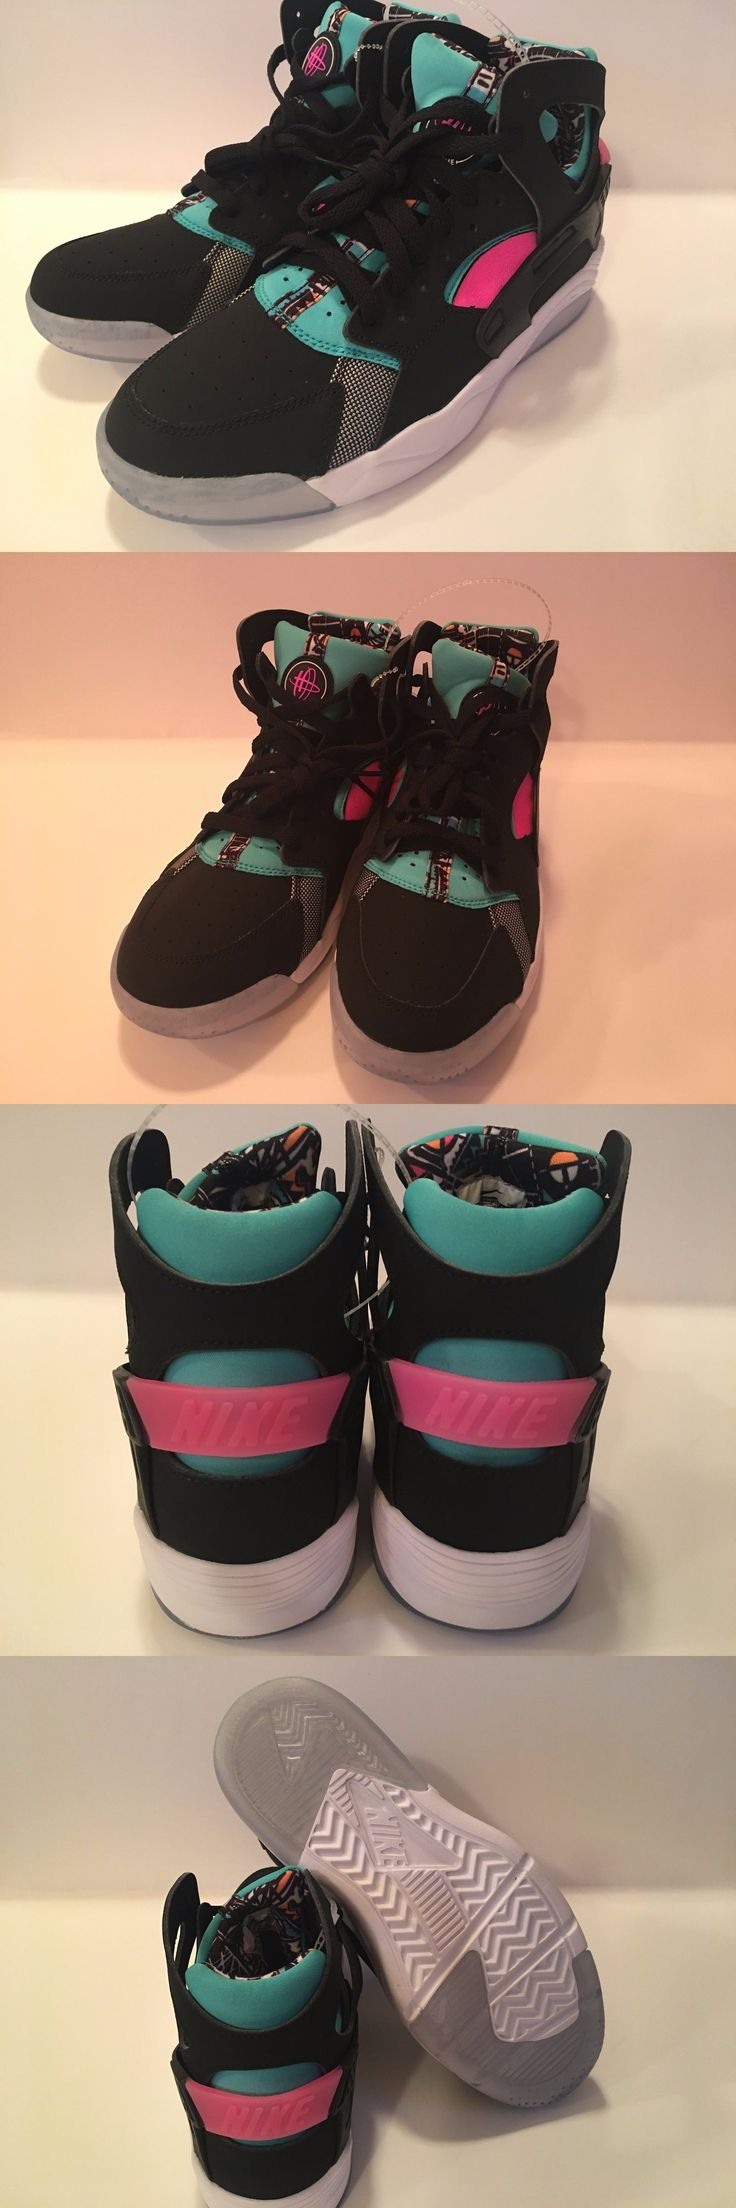 Youth 158973: Nike Flight Huarache New! Youth Size 6.5 Y Black Teal Pink Basketball Shoes $95 -> BUY IT NOW ONLY: $55 on eBay!